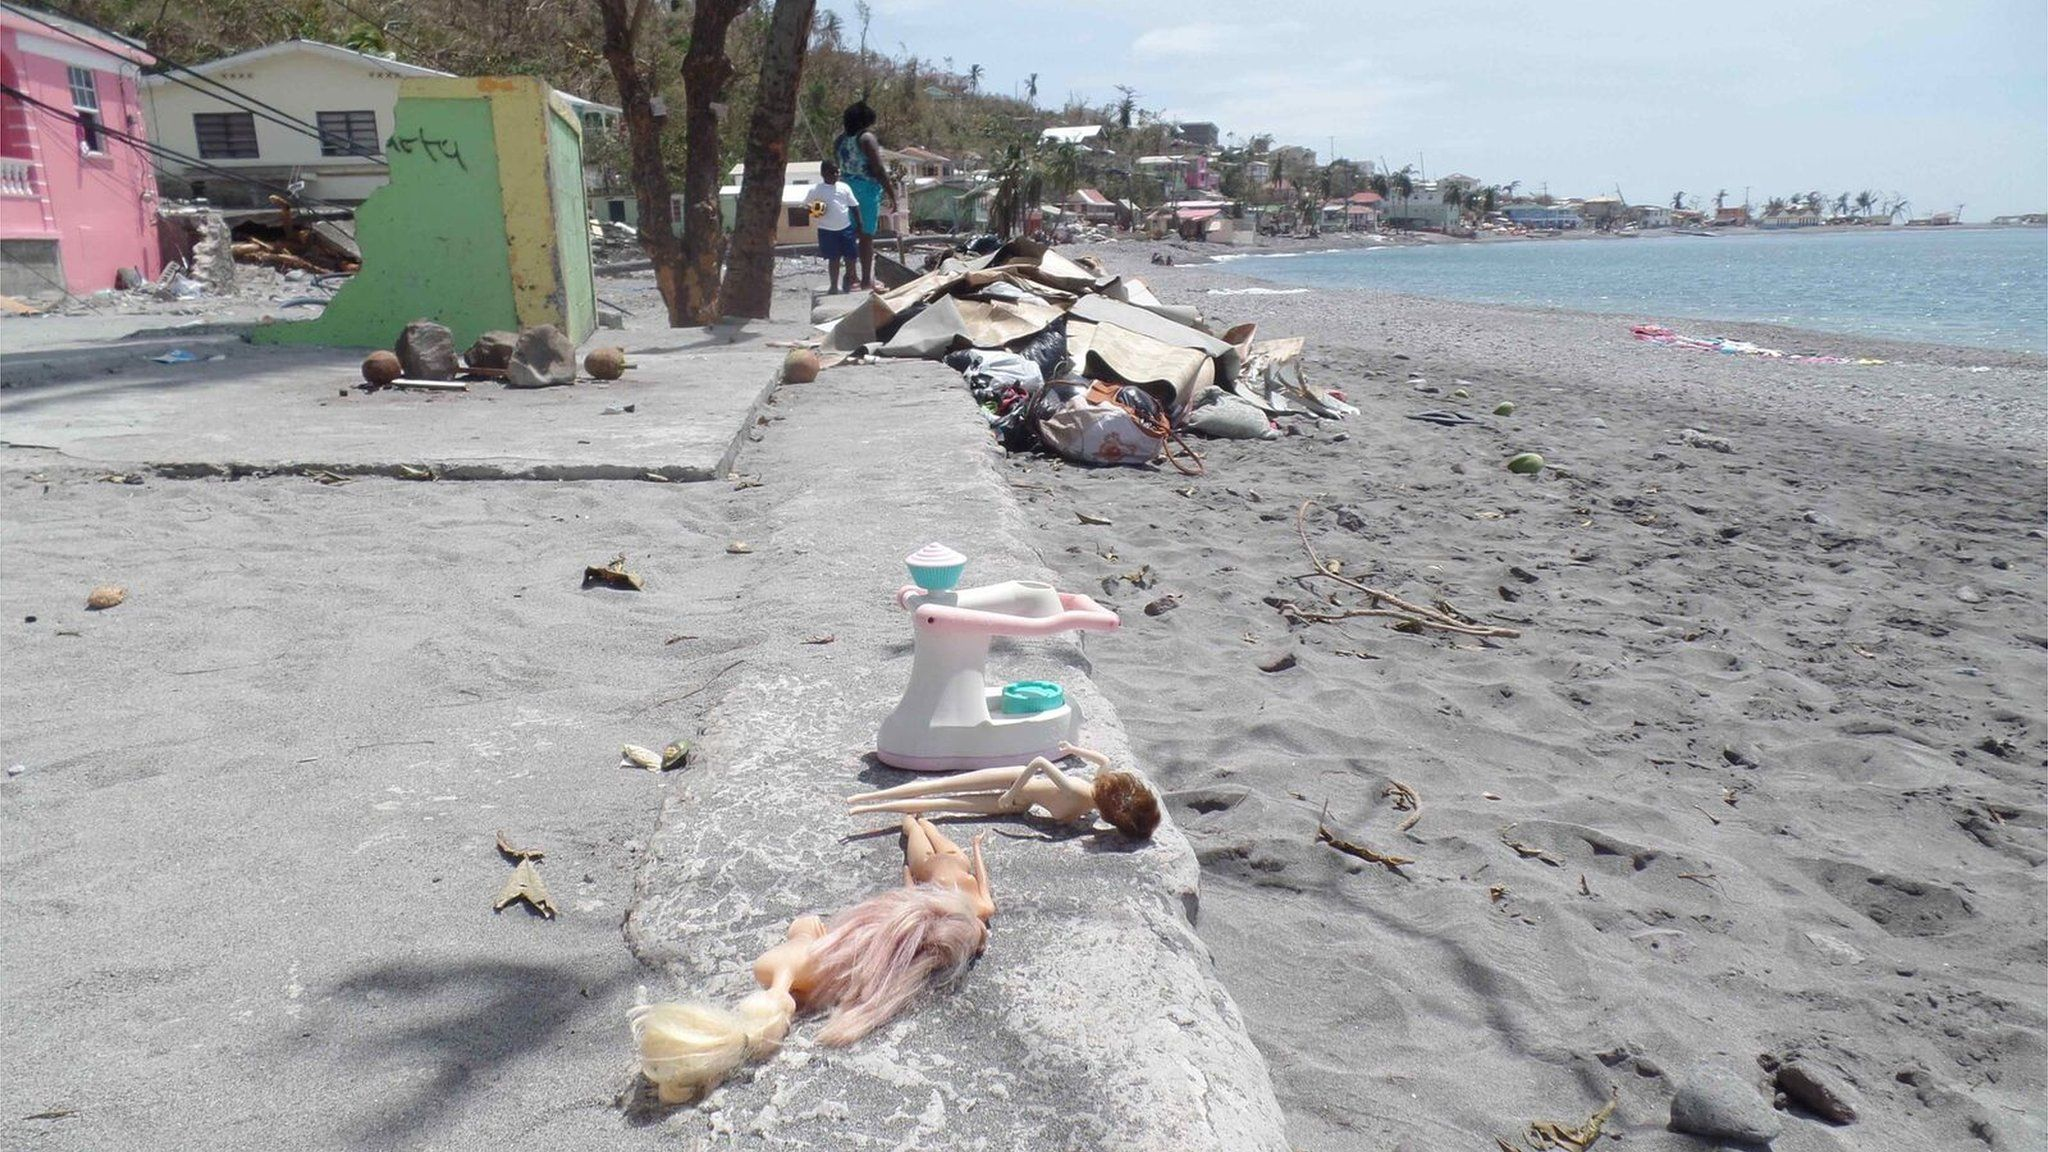 In Pictures Dominica S Desolation Natural Disasters Earth Science Environmental Science